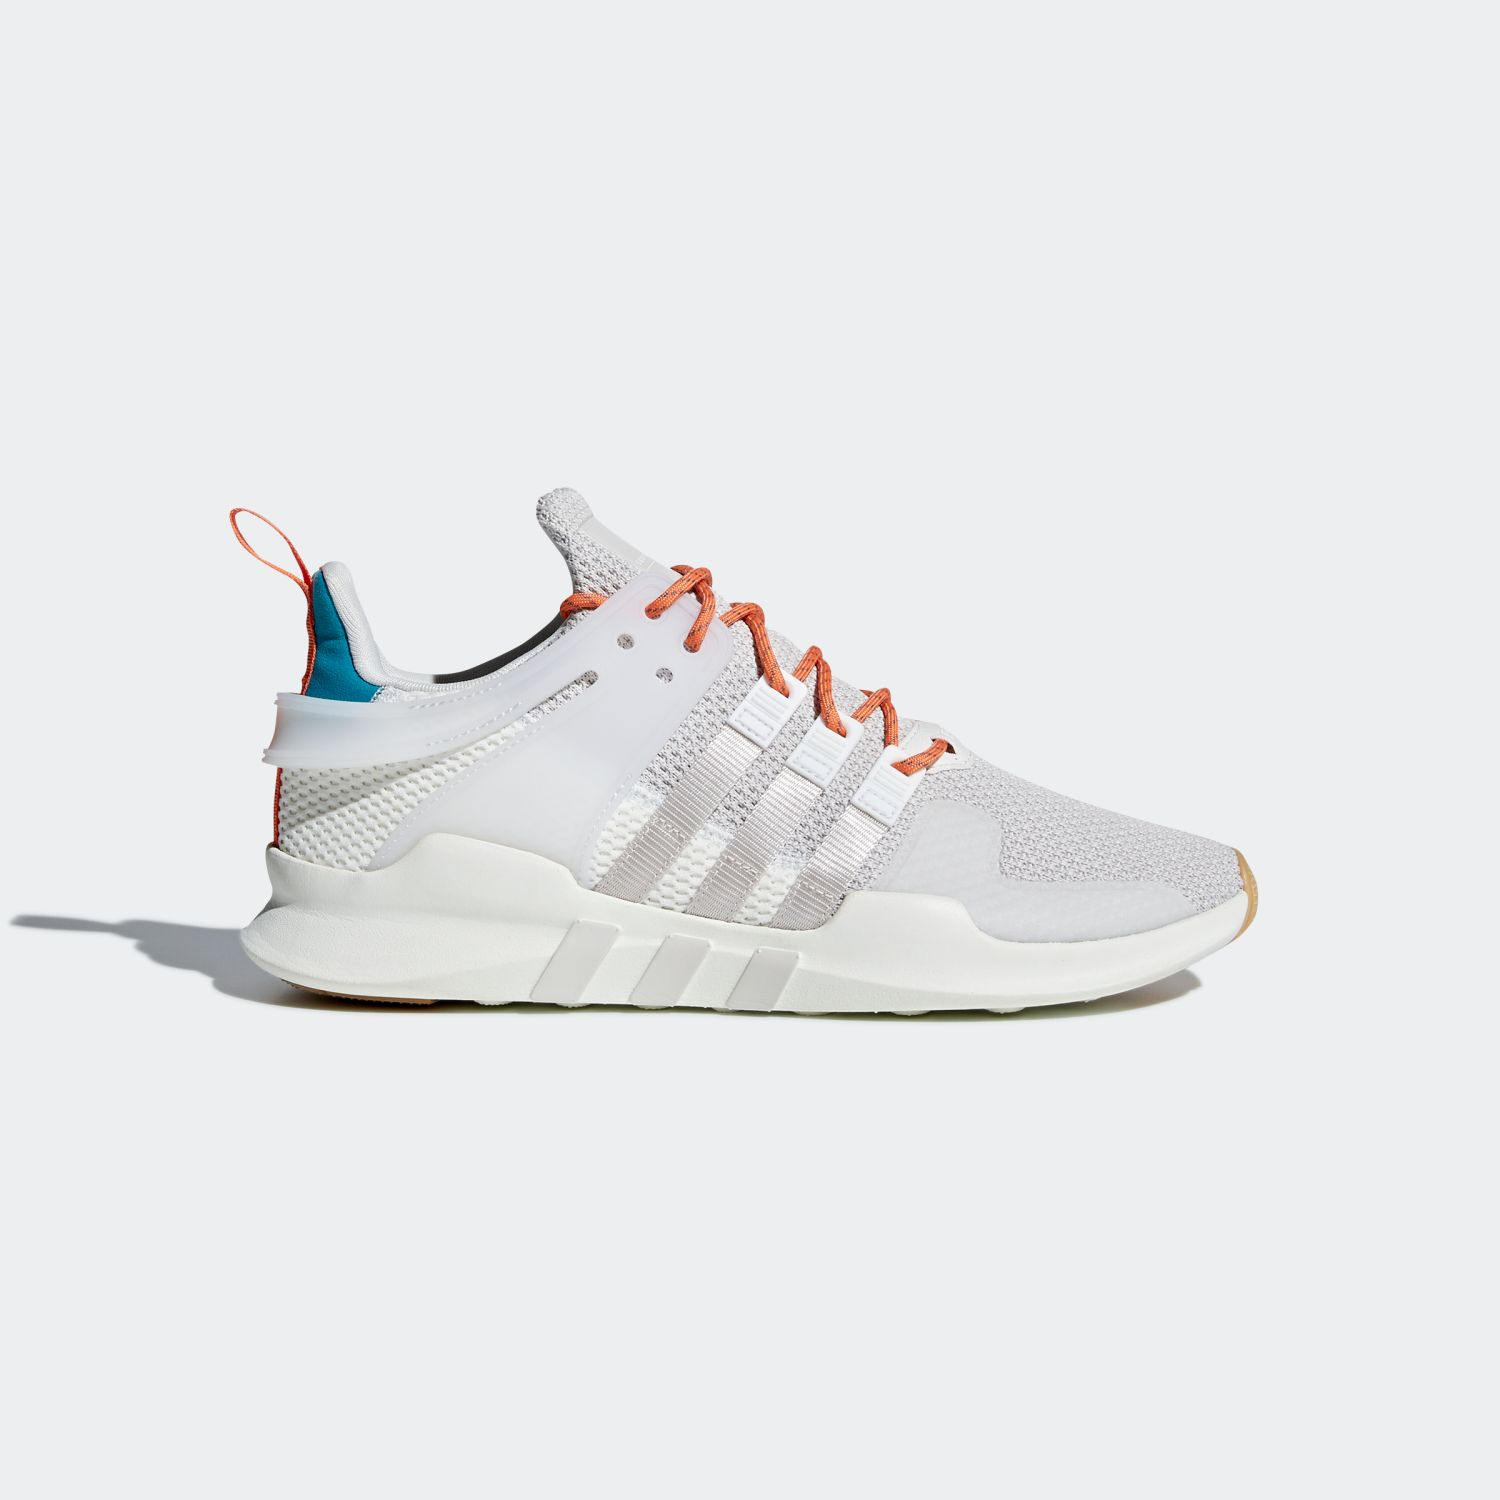 EQT Support Adv Summer White